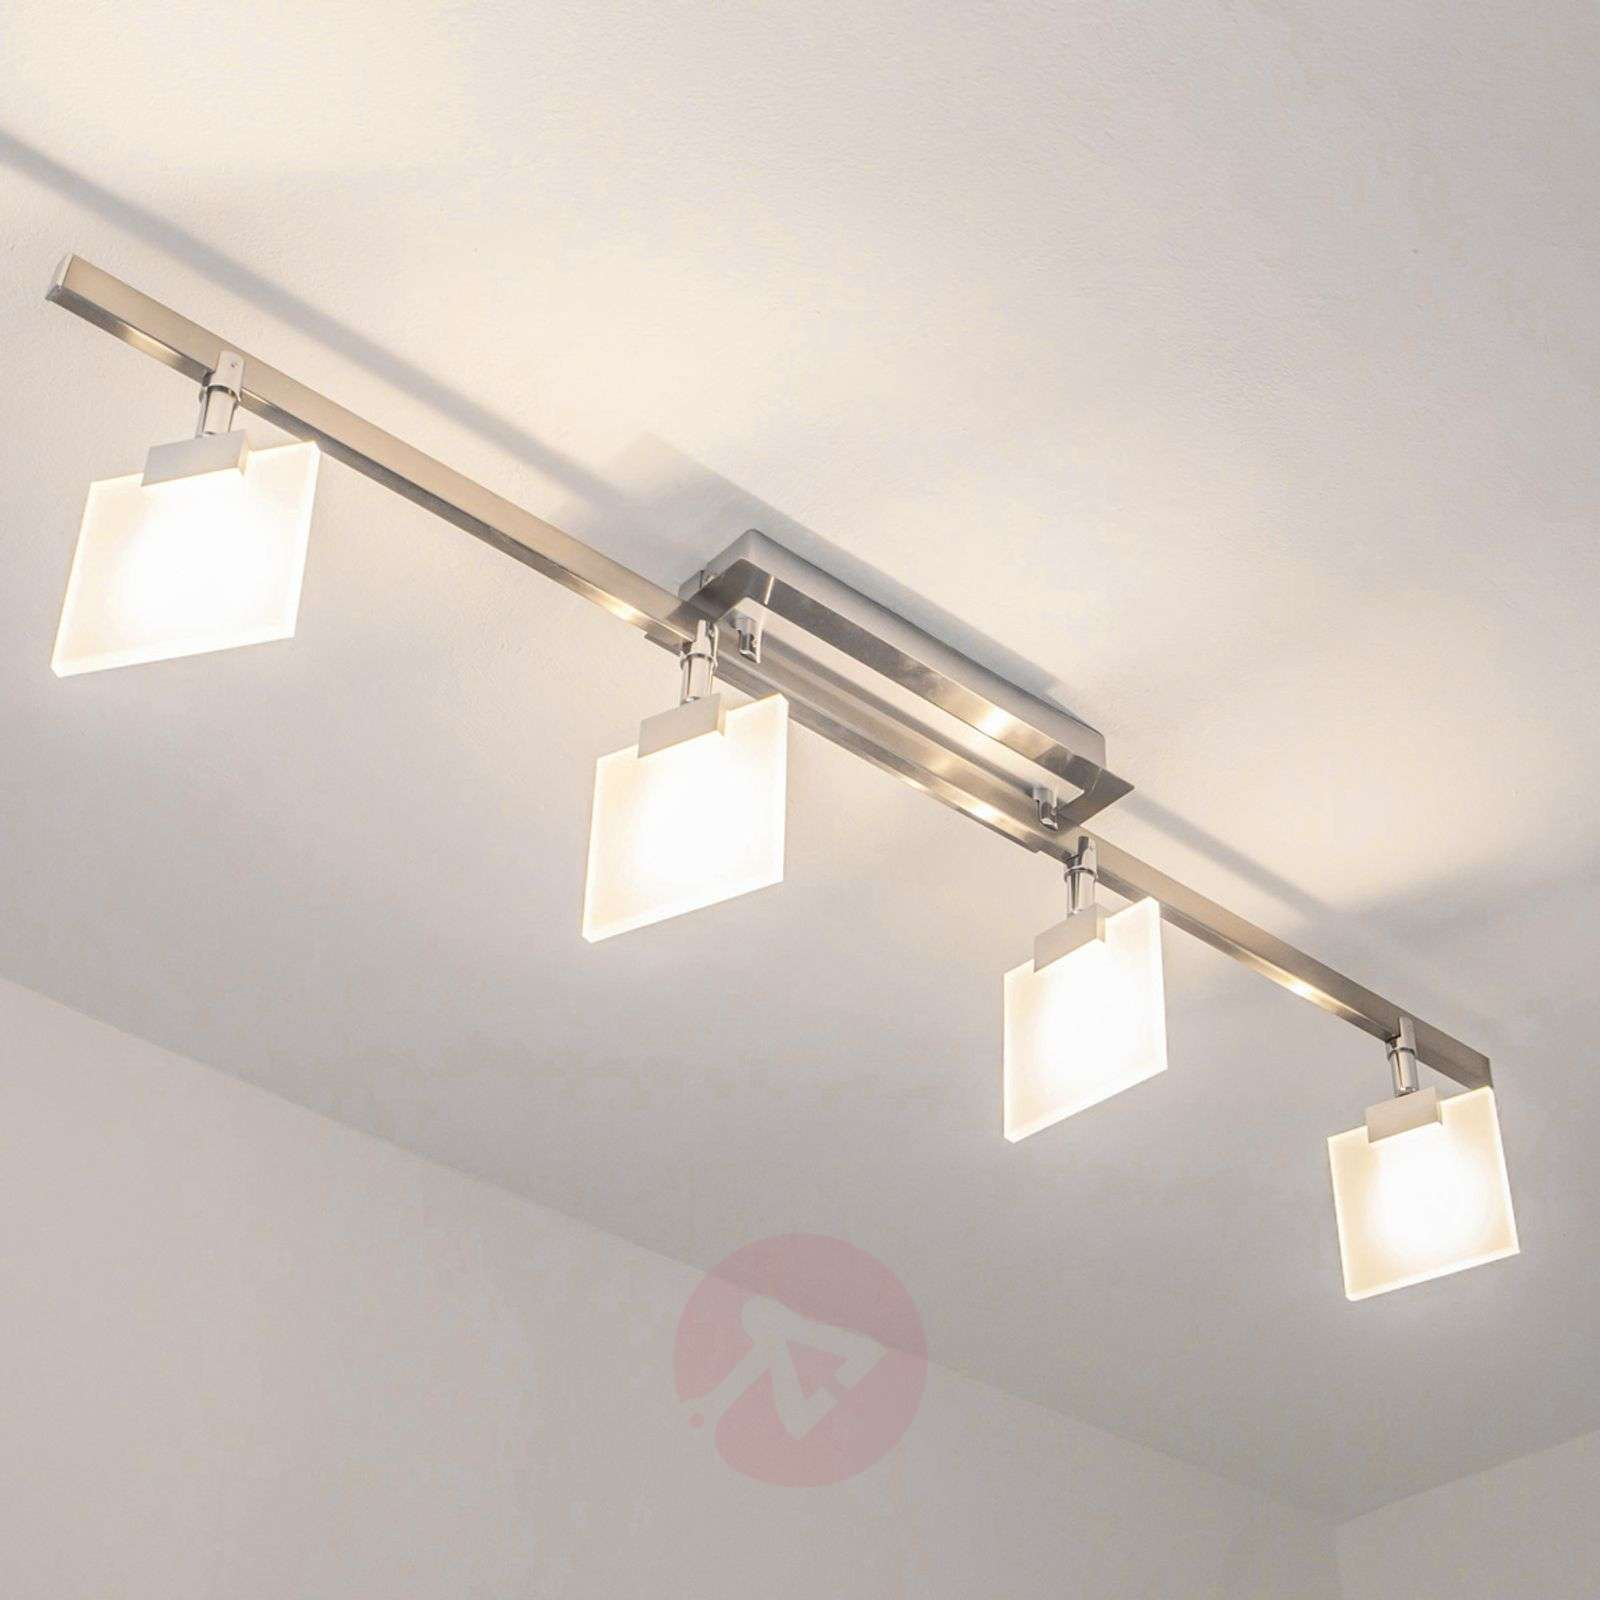 Led Kitchen Ceiling Lights Uk: Livius Kitchen Ceiling Light With COB LEDs